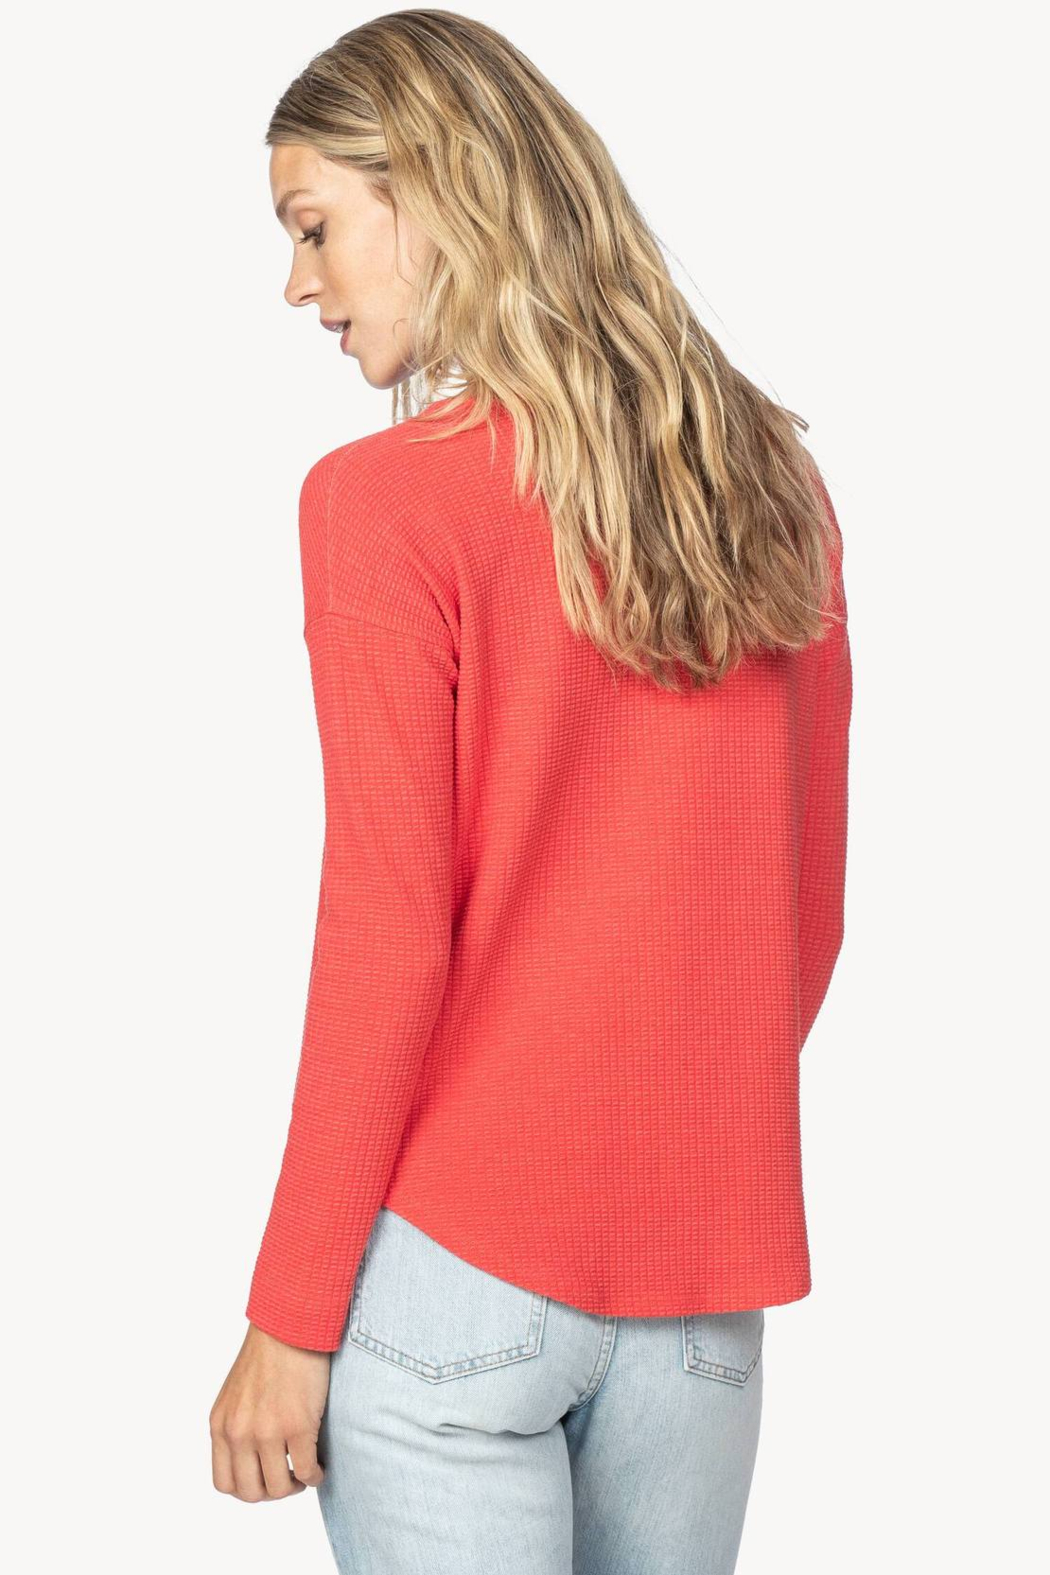 Lilla P PA1092 - Long Sleeved Boatneck - Front Full Image